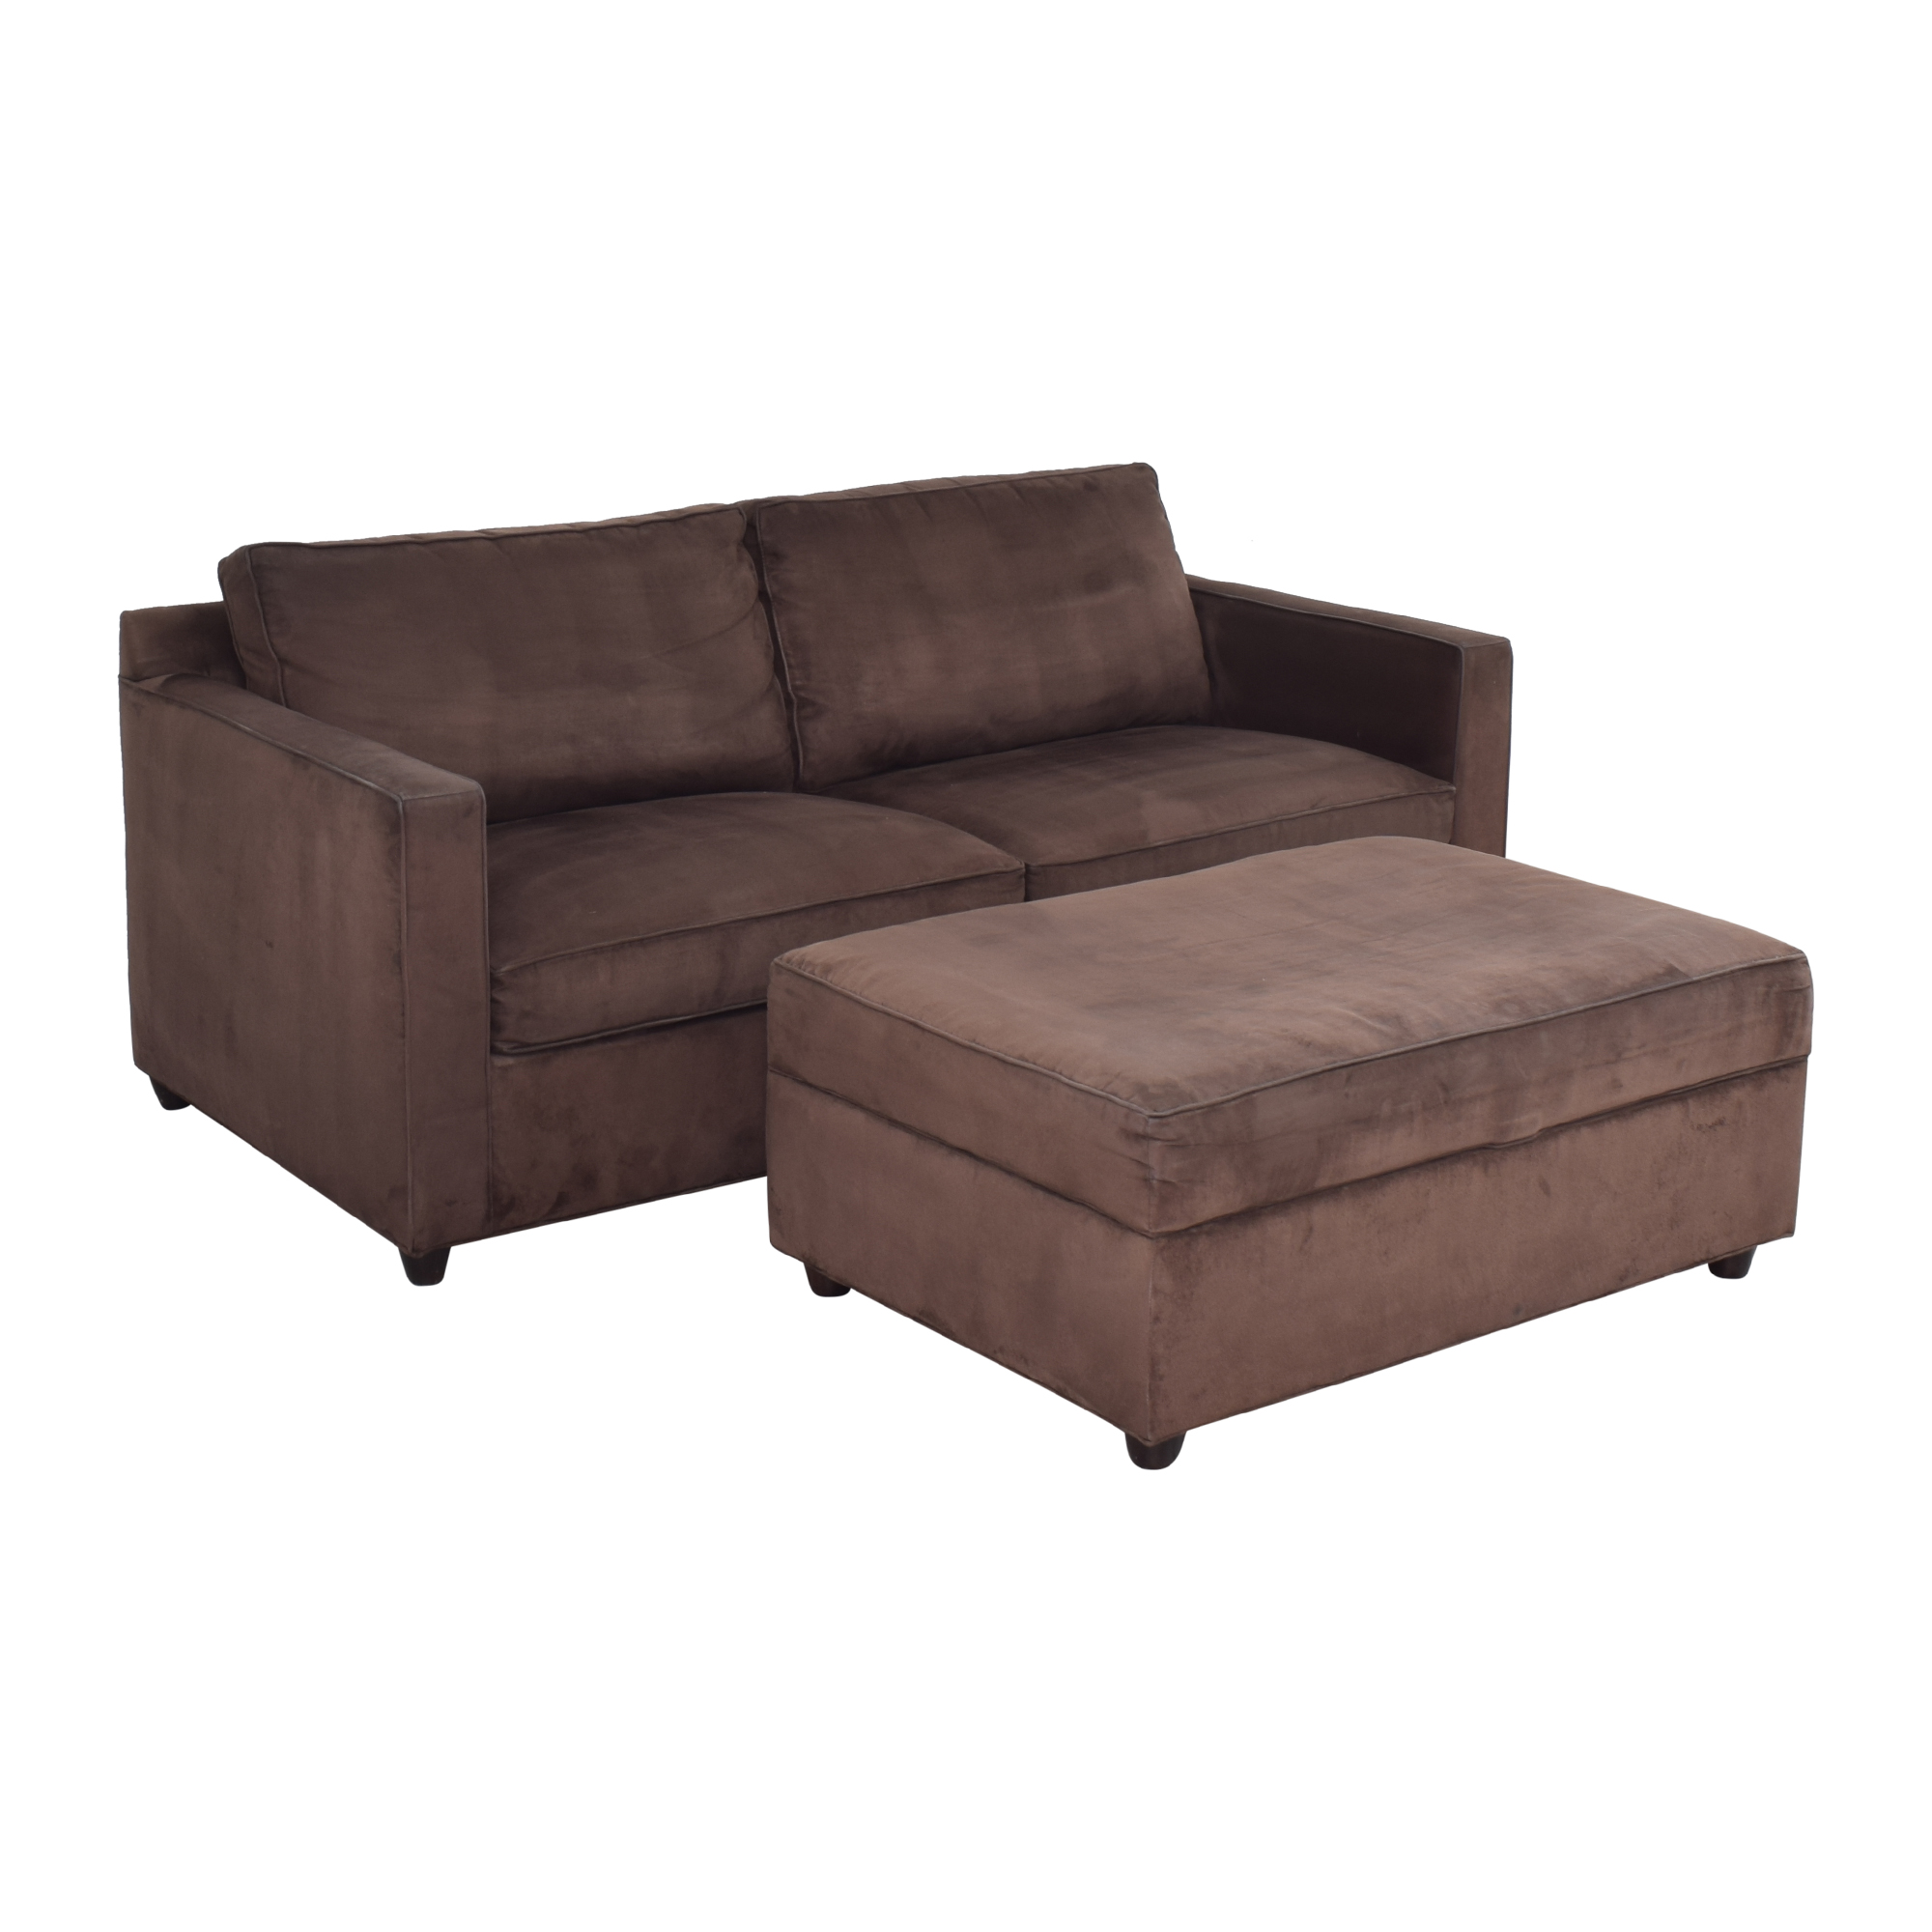 Crate & Barrel Crate & Barrel Two Cushion Sofa with Storage Ottoman brown